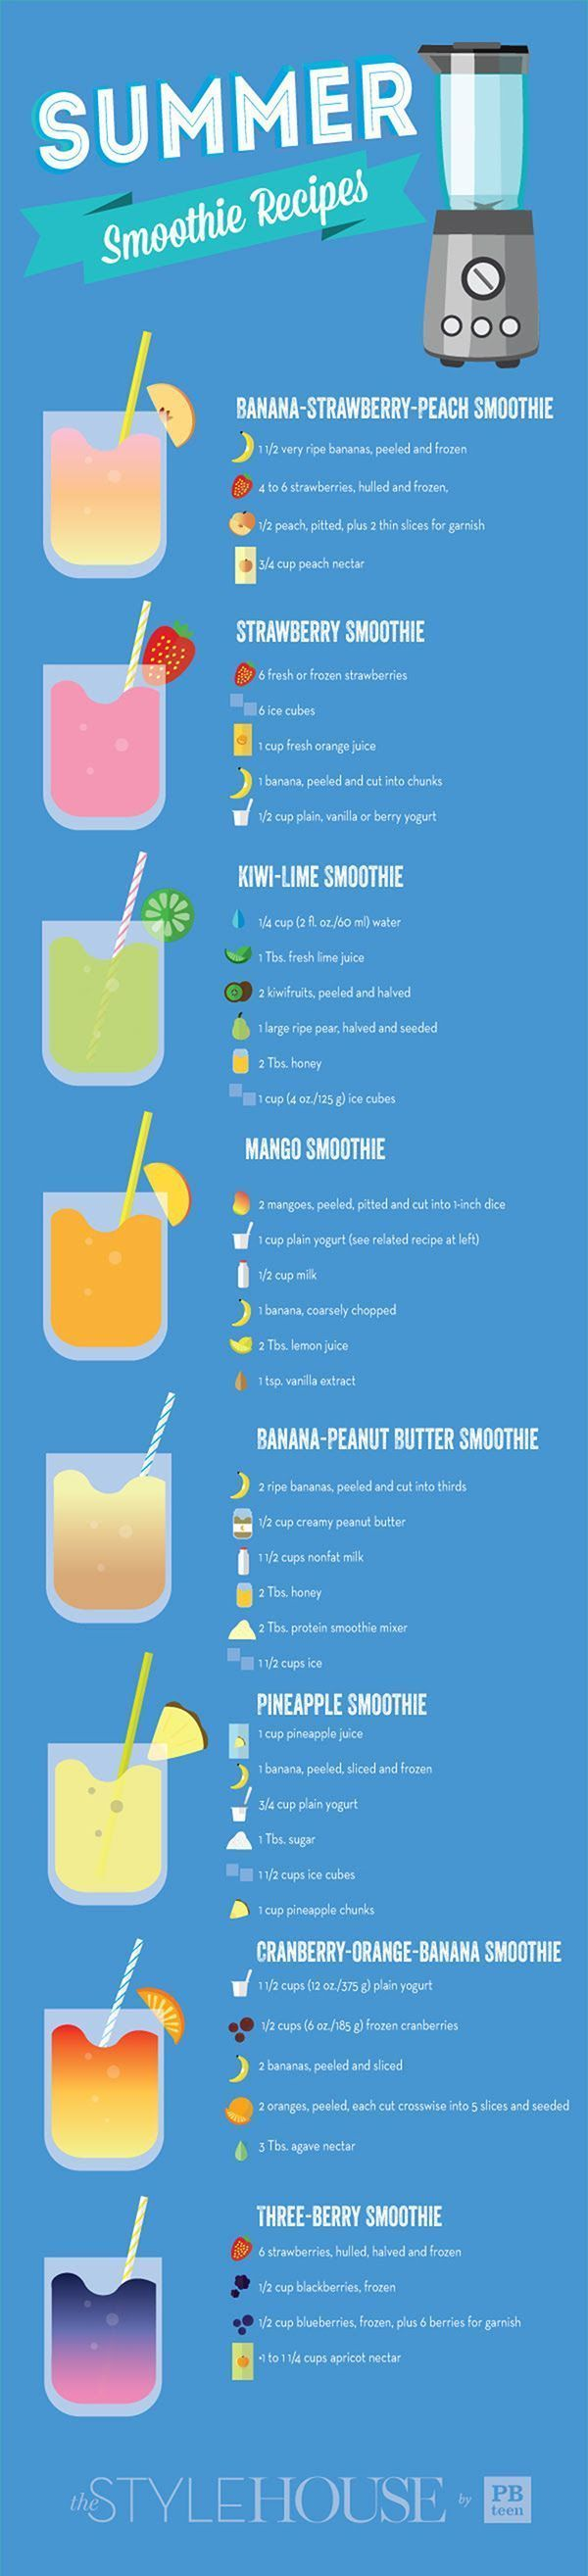 8 summer smoothie #recipes to keep you feeling fully refreshed!